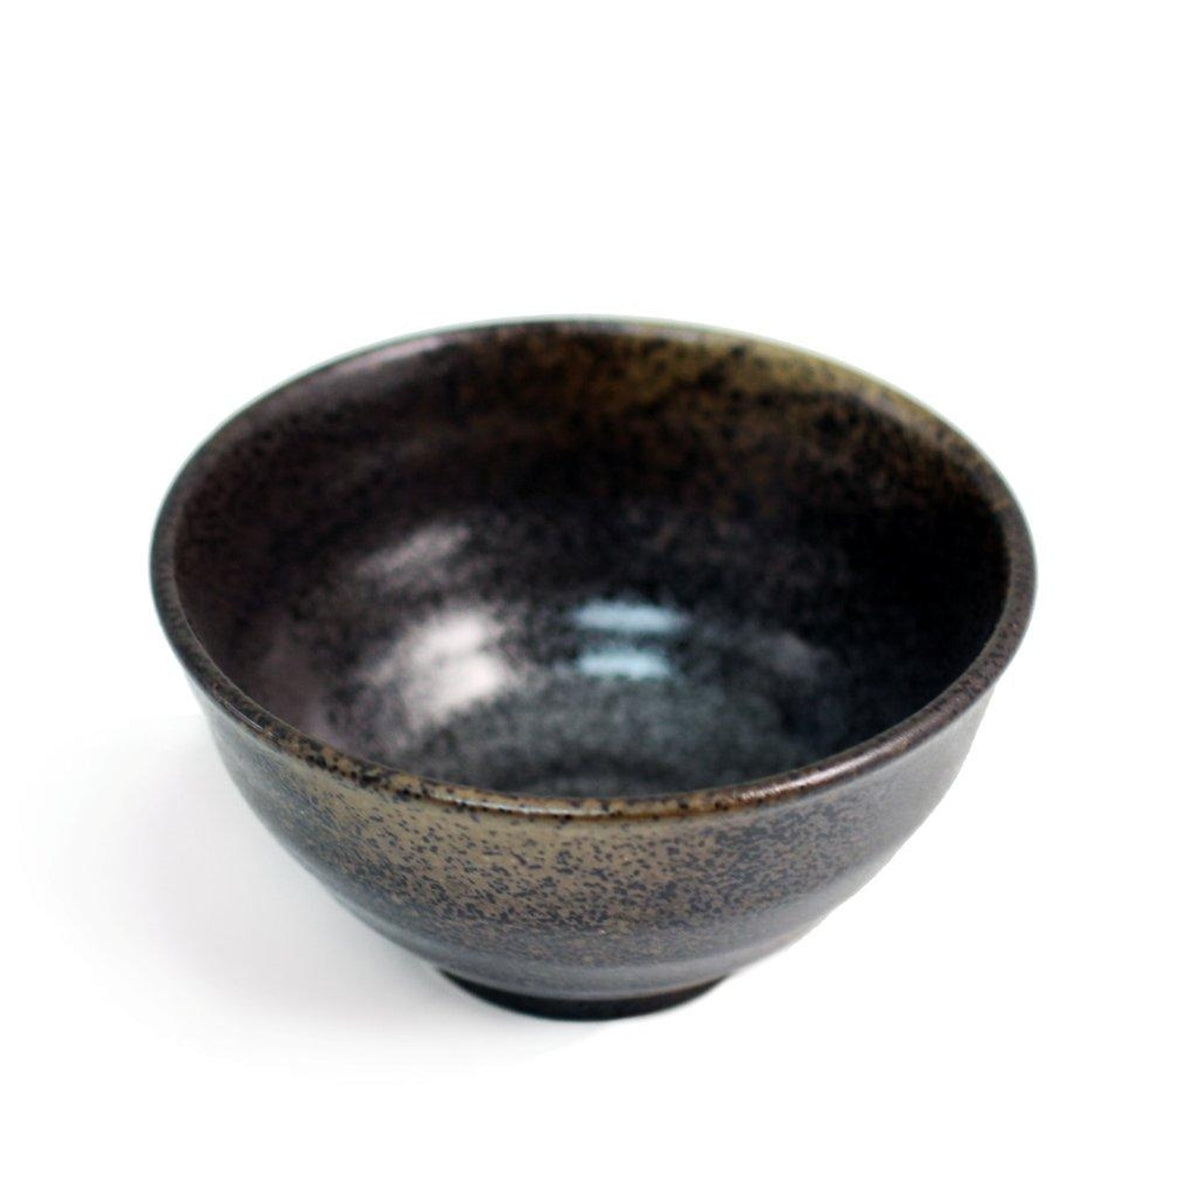 "Grainy Rice Bowl 11 fl oz / 4.72"" dia"